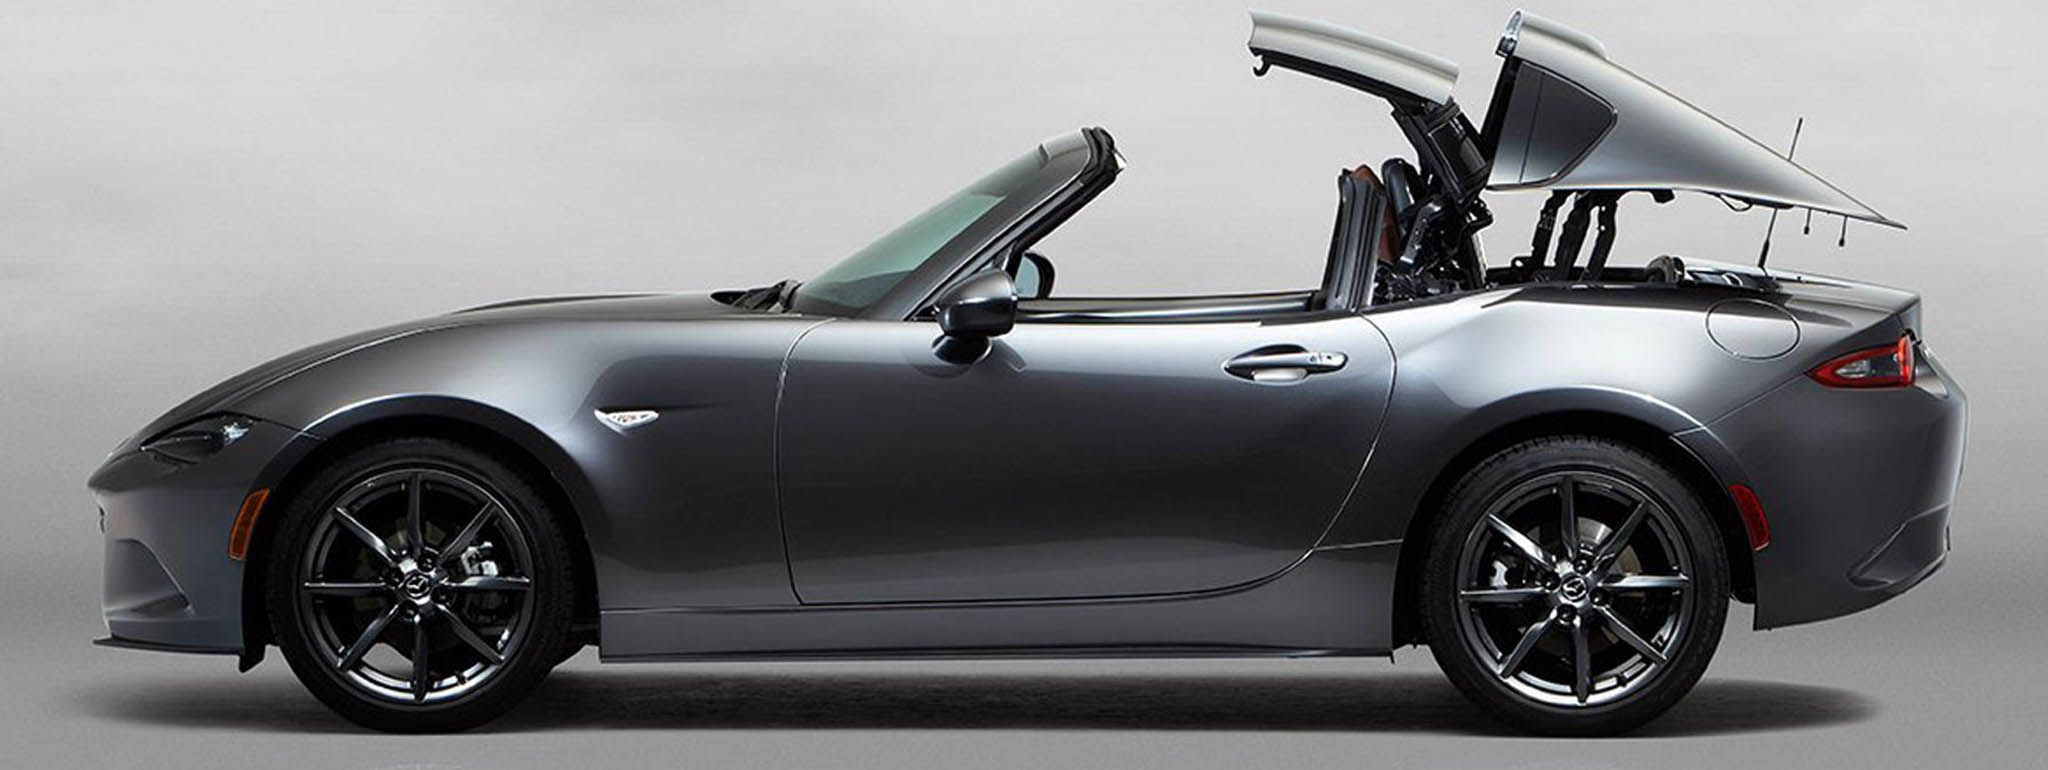 Mazda MX-5 RF hard top at Barloworld